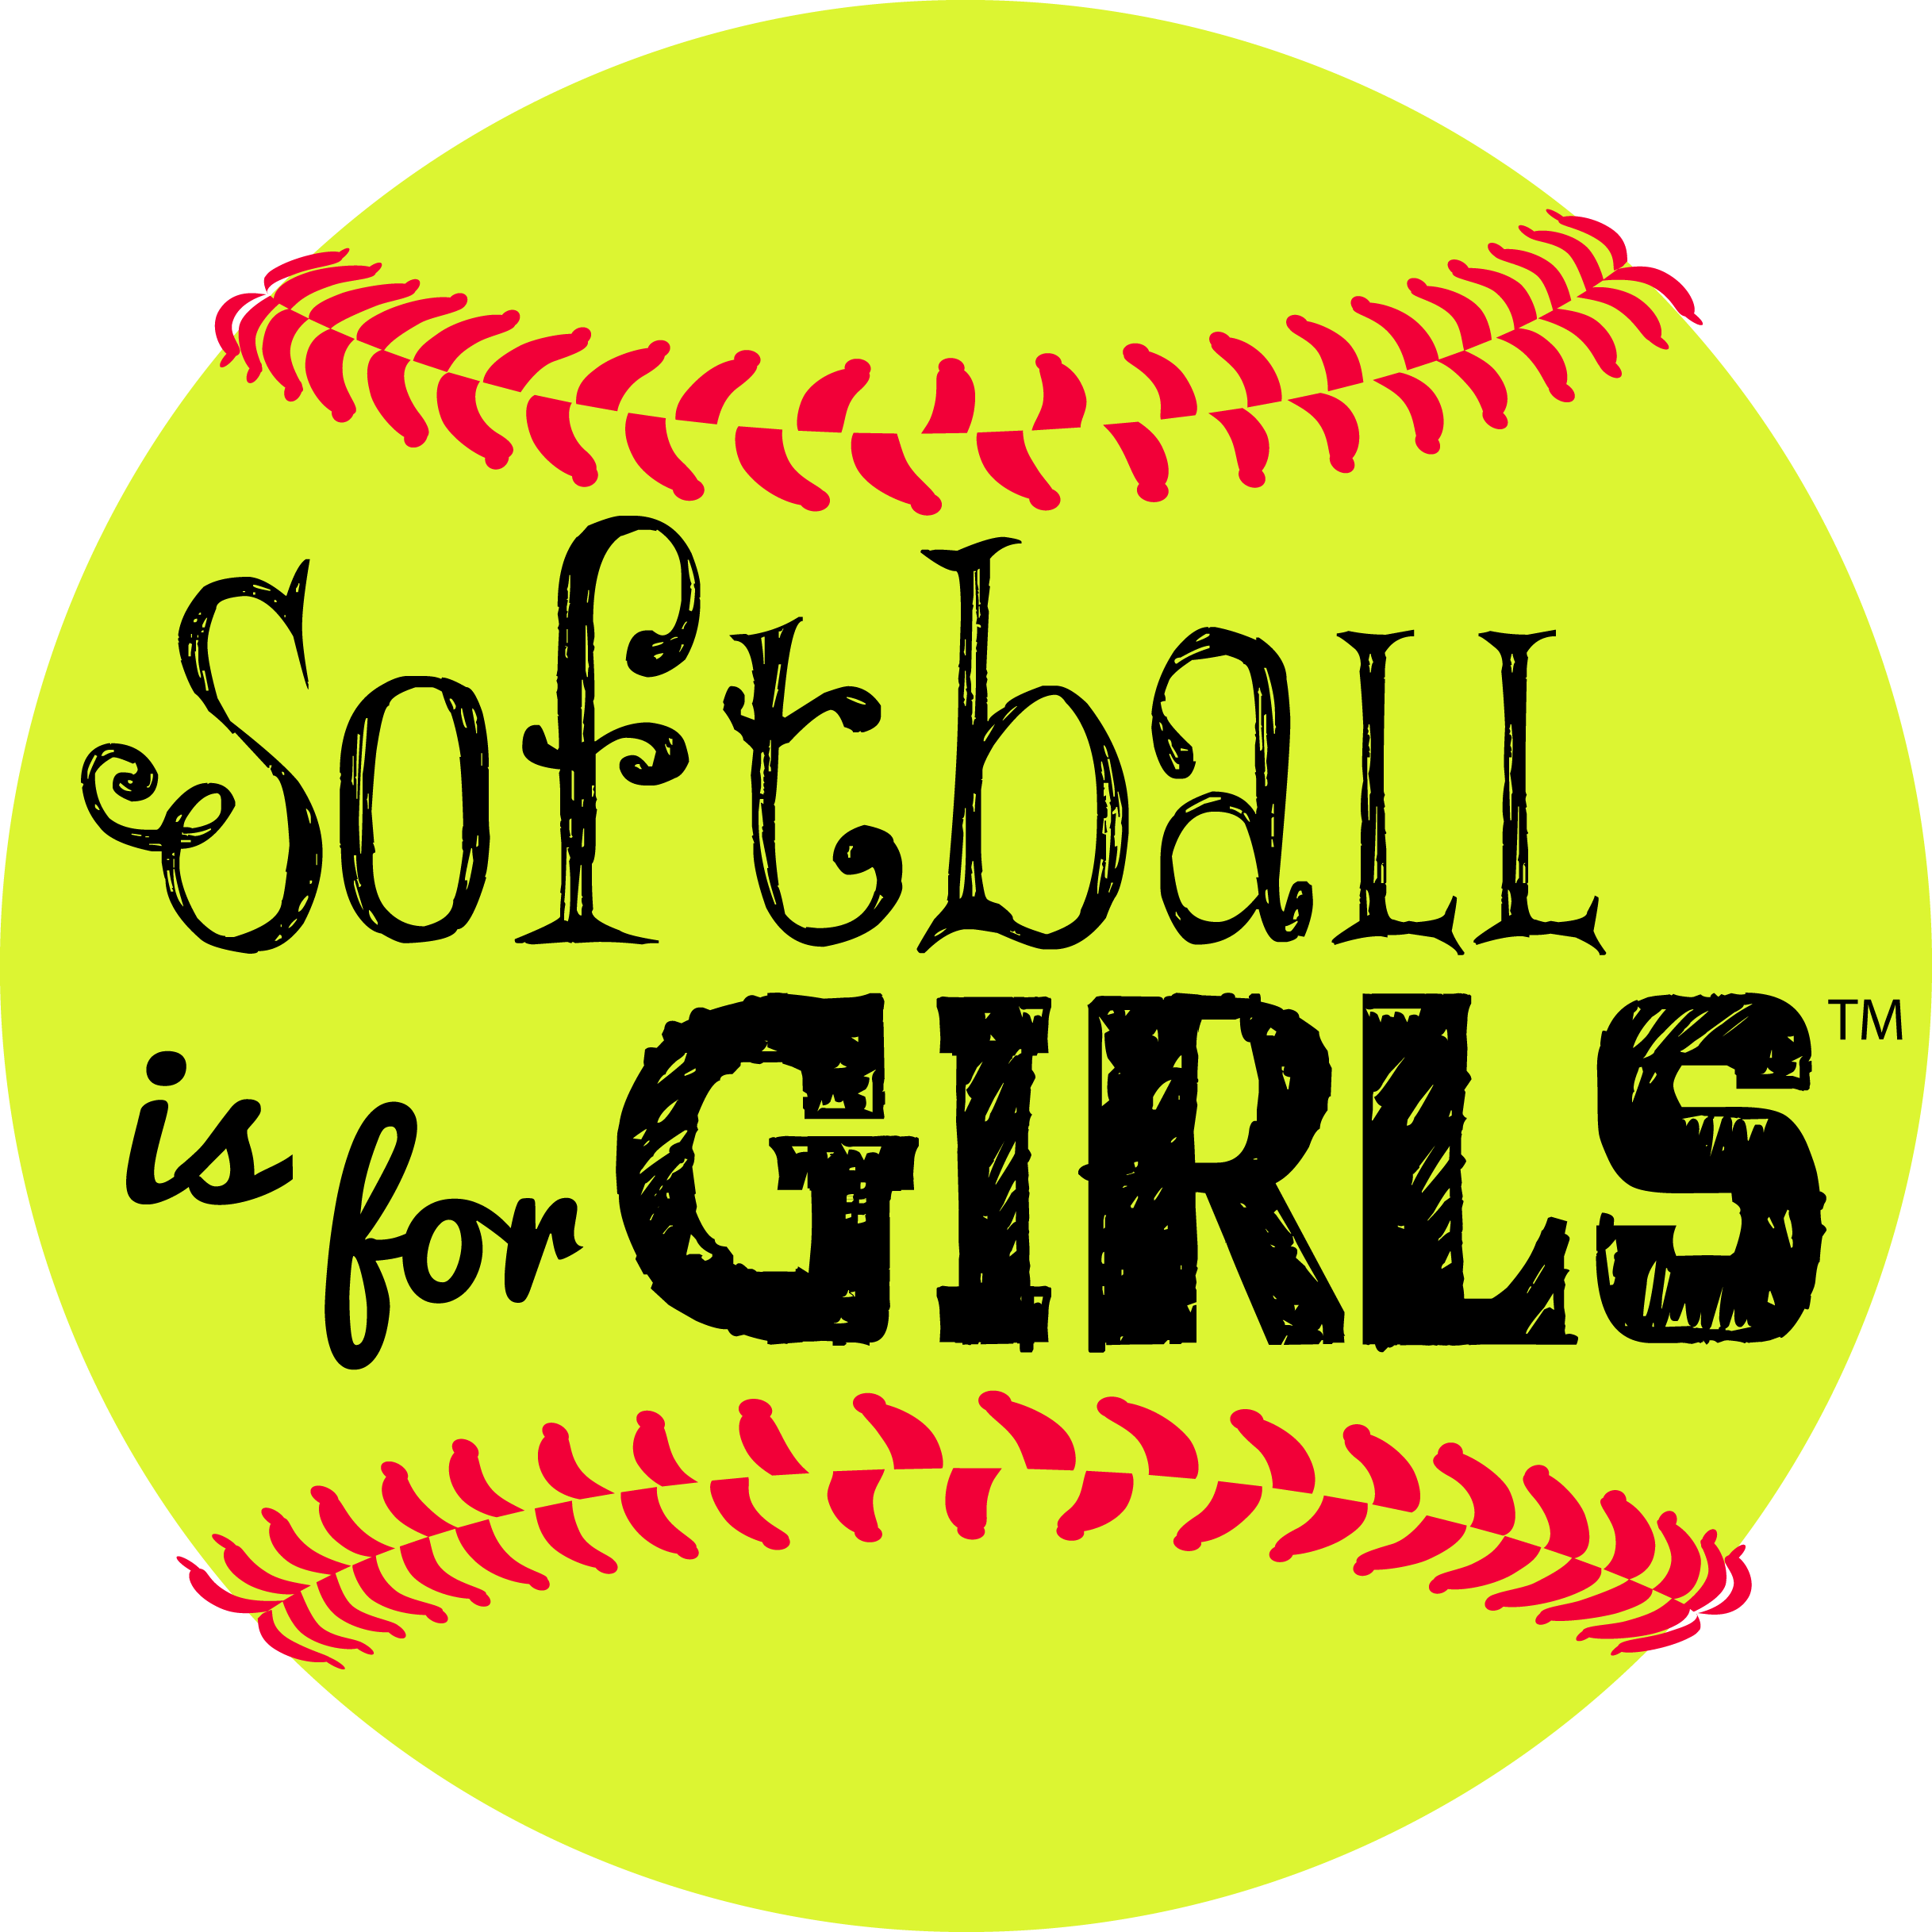 quotes about softball girls quotesgram